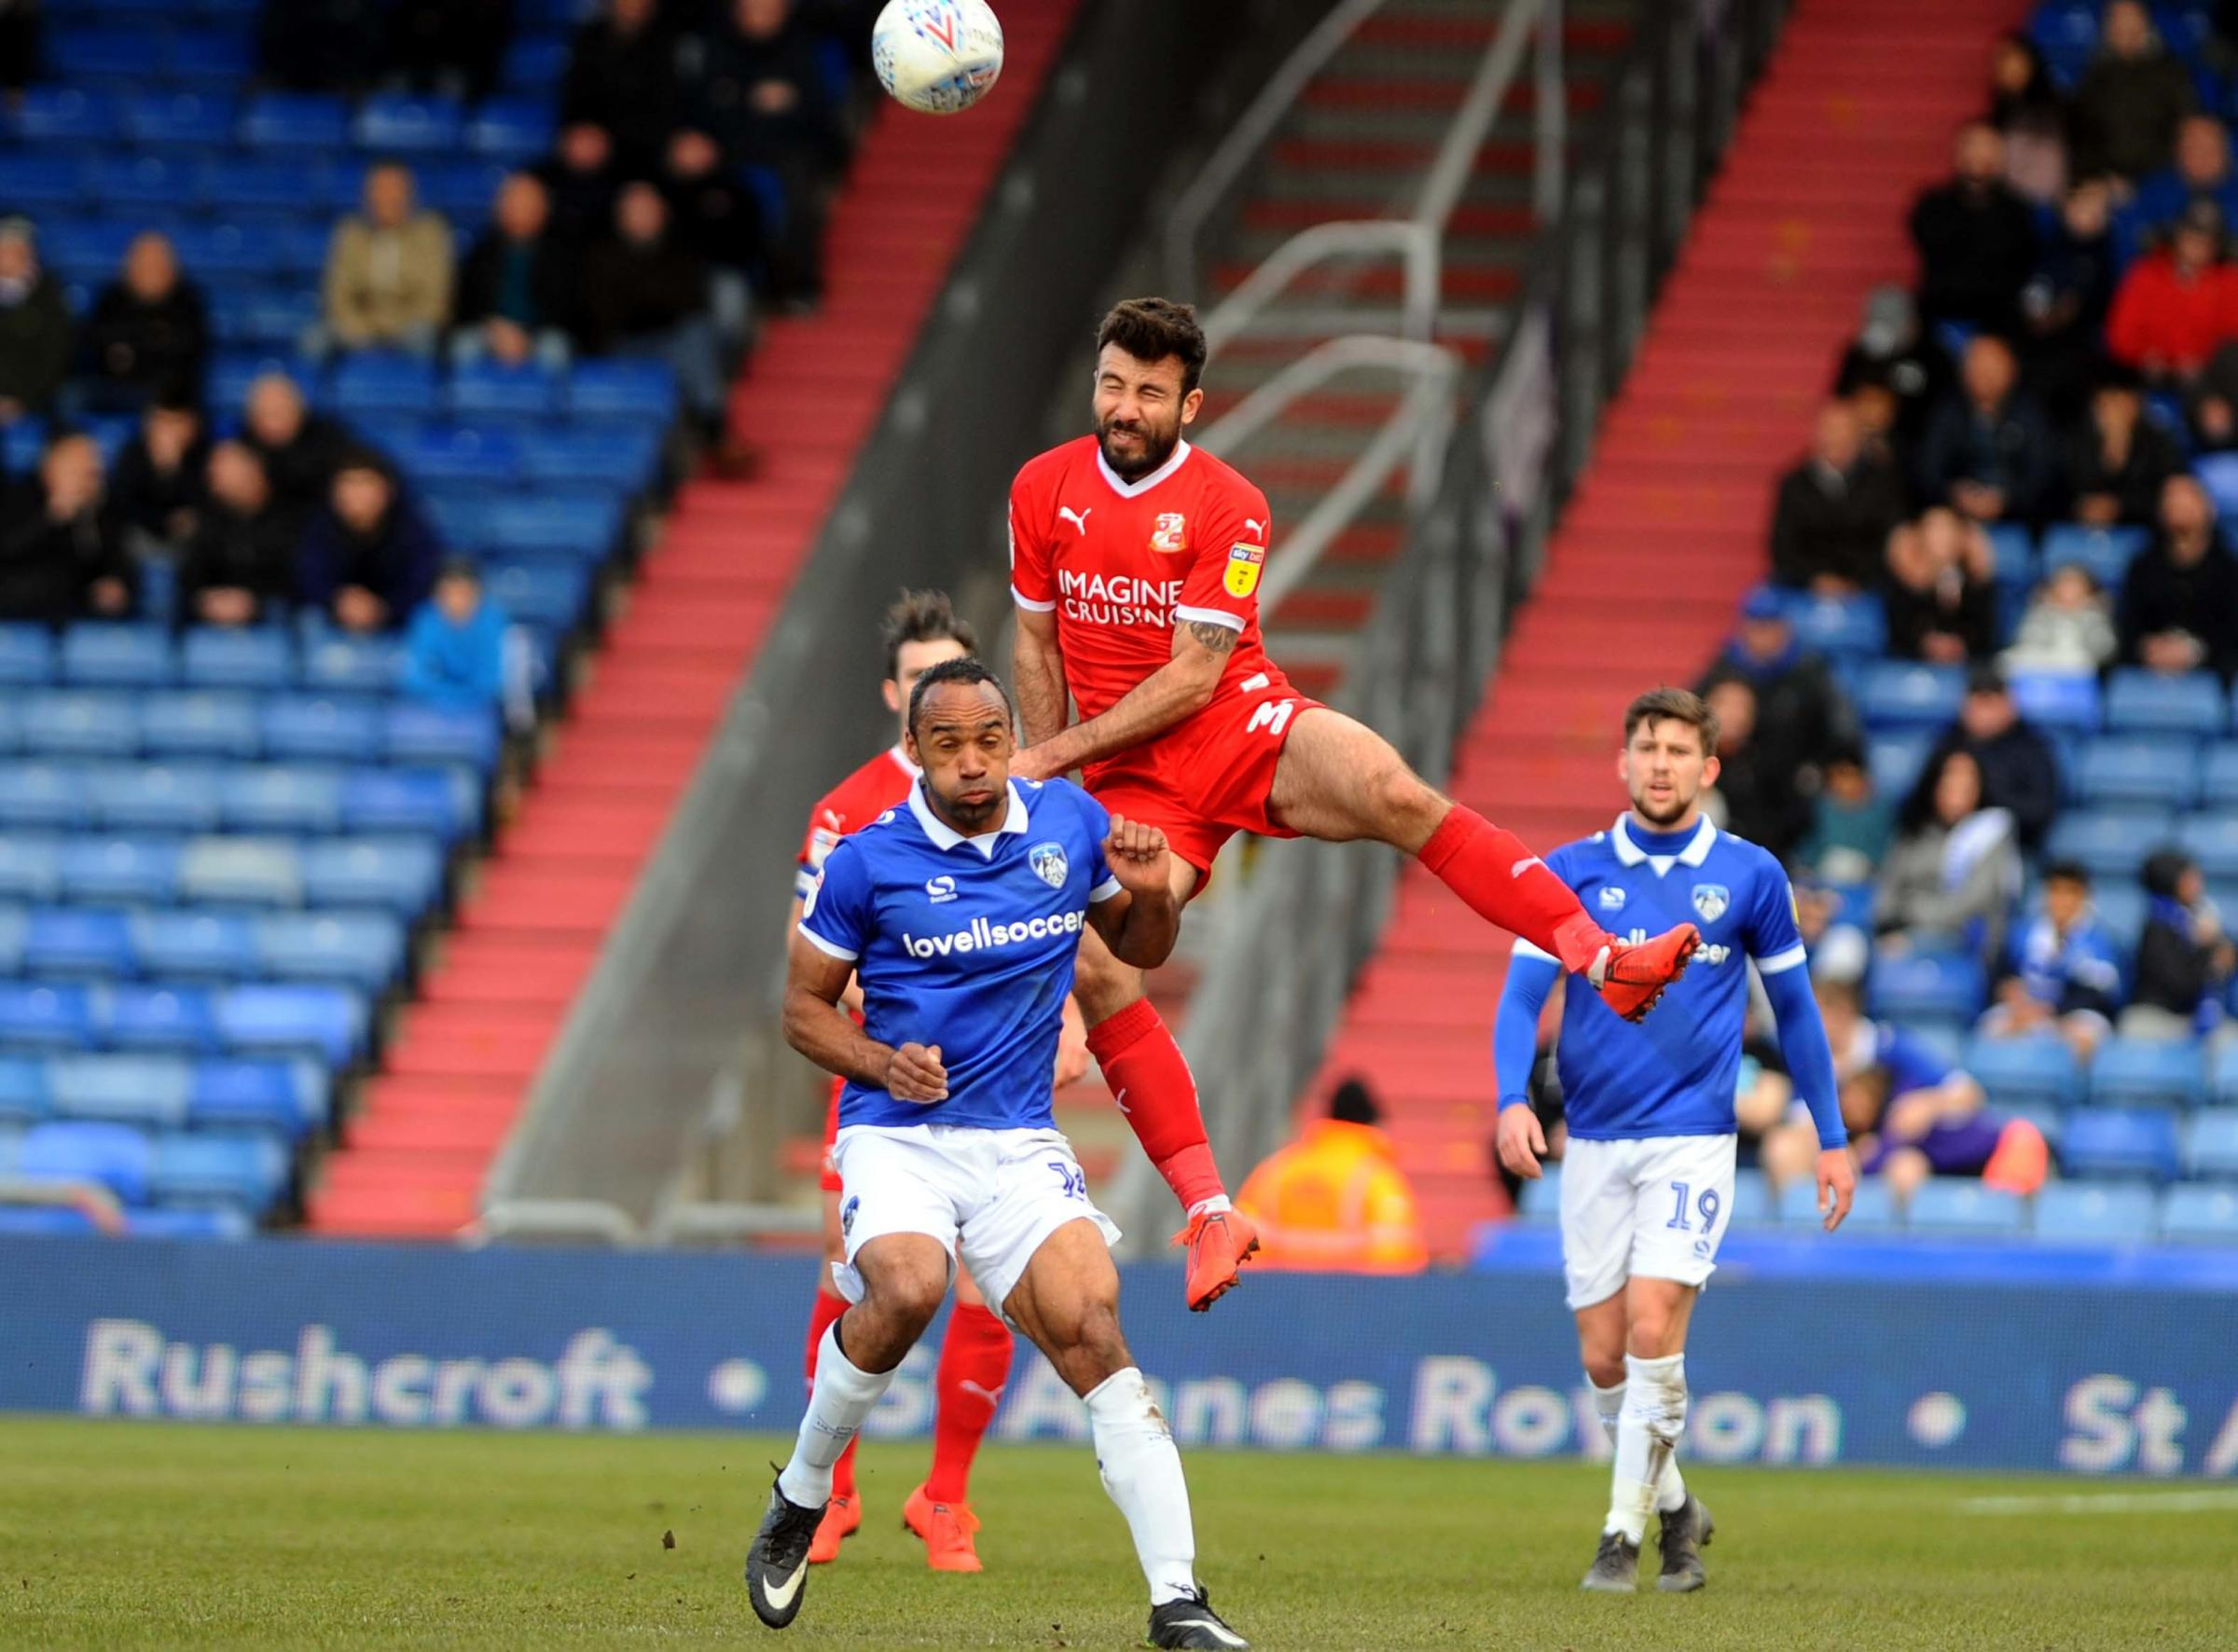 Michael Doughty, who scored Swindon Town's first goal on the day, climbs to win a high ball during Saturday's draw at Oldham Athletic